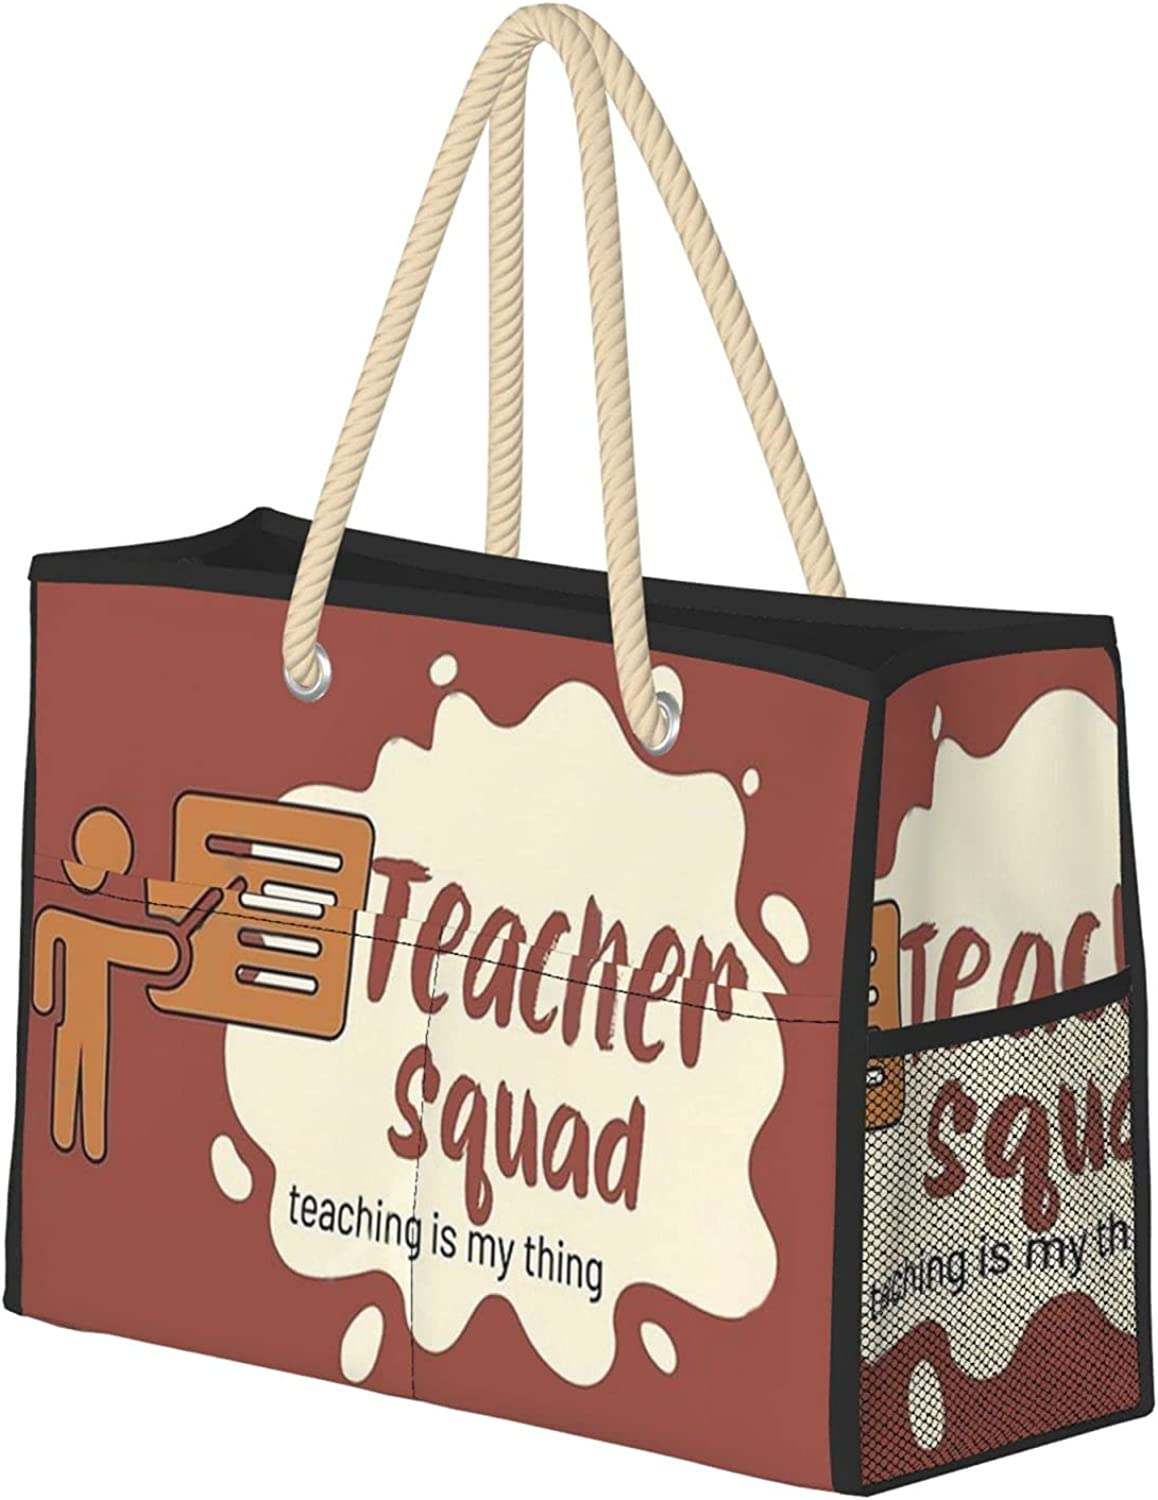 Max 61% OFF Teaching is my thing teacher squad for Max 64% OFF Women Extra Beach Lar Bag